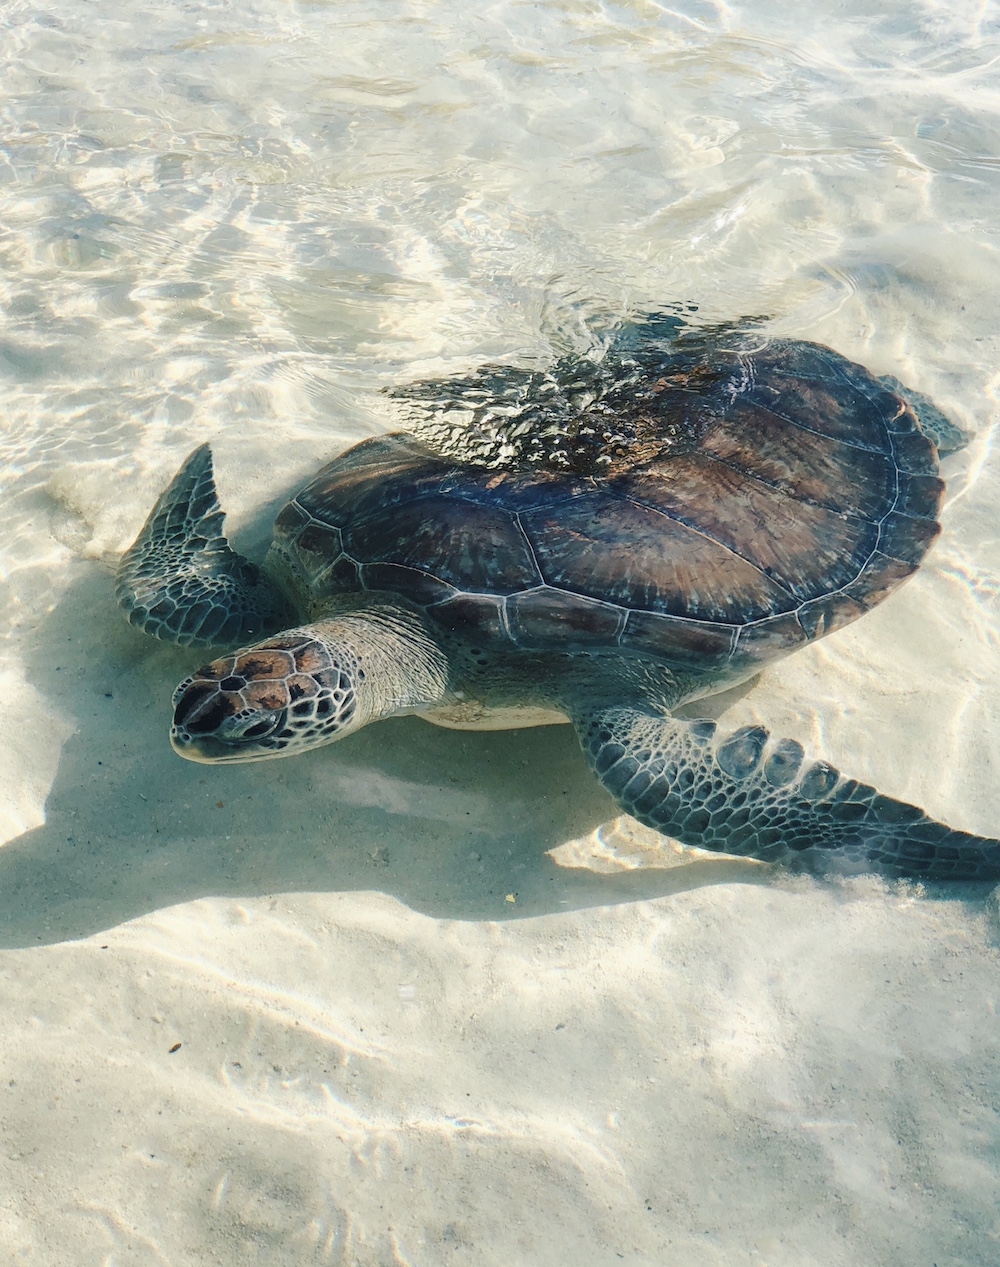 Sea turtle swimming at animal sanctuary Grand Hyatt Baha Mar Bahamas